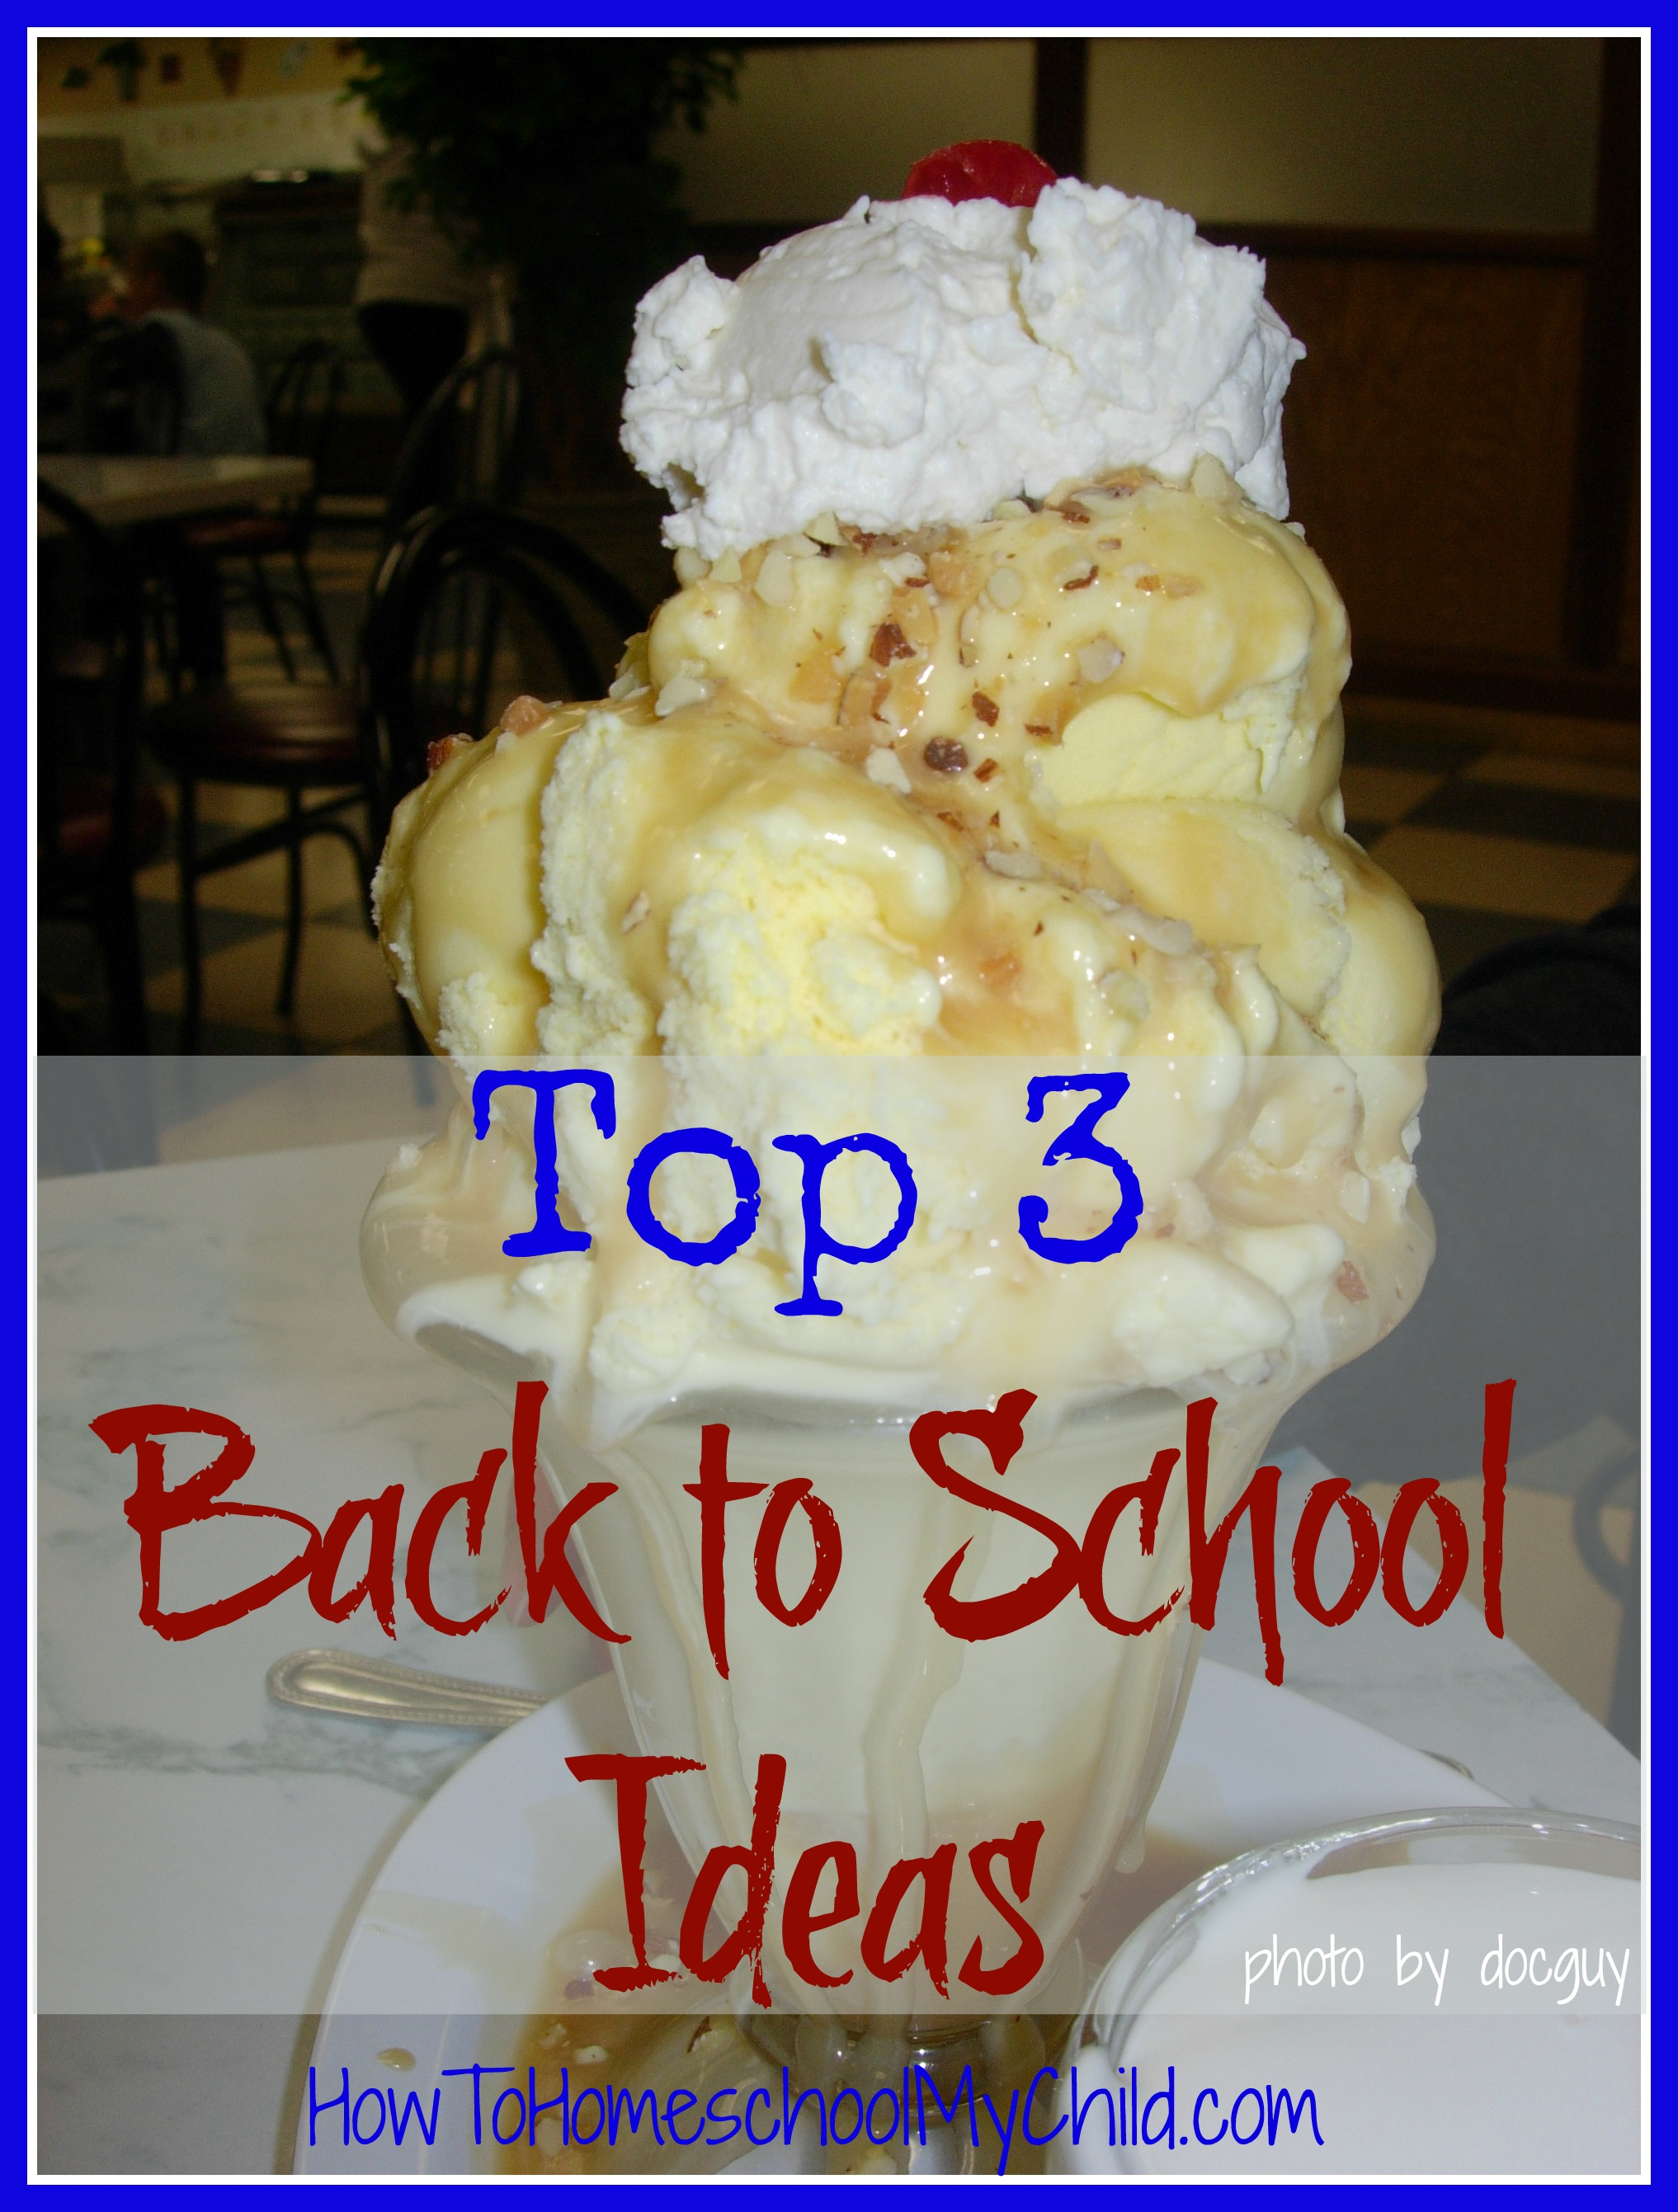 Top 3 back to school ideas & win 16 homeschool interviews from HowToHomeschoolMyChild.com